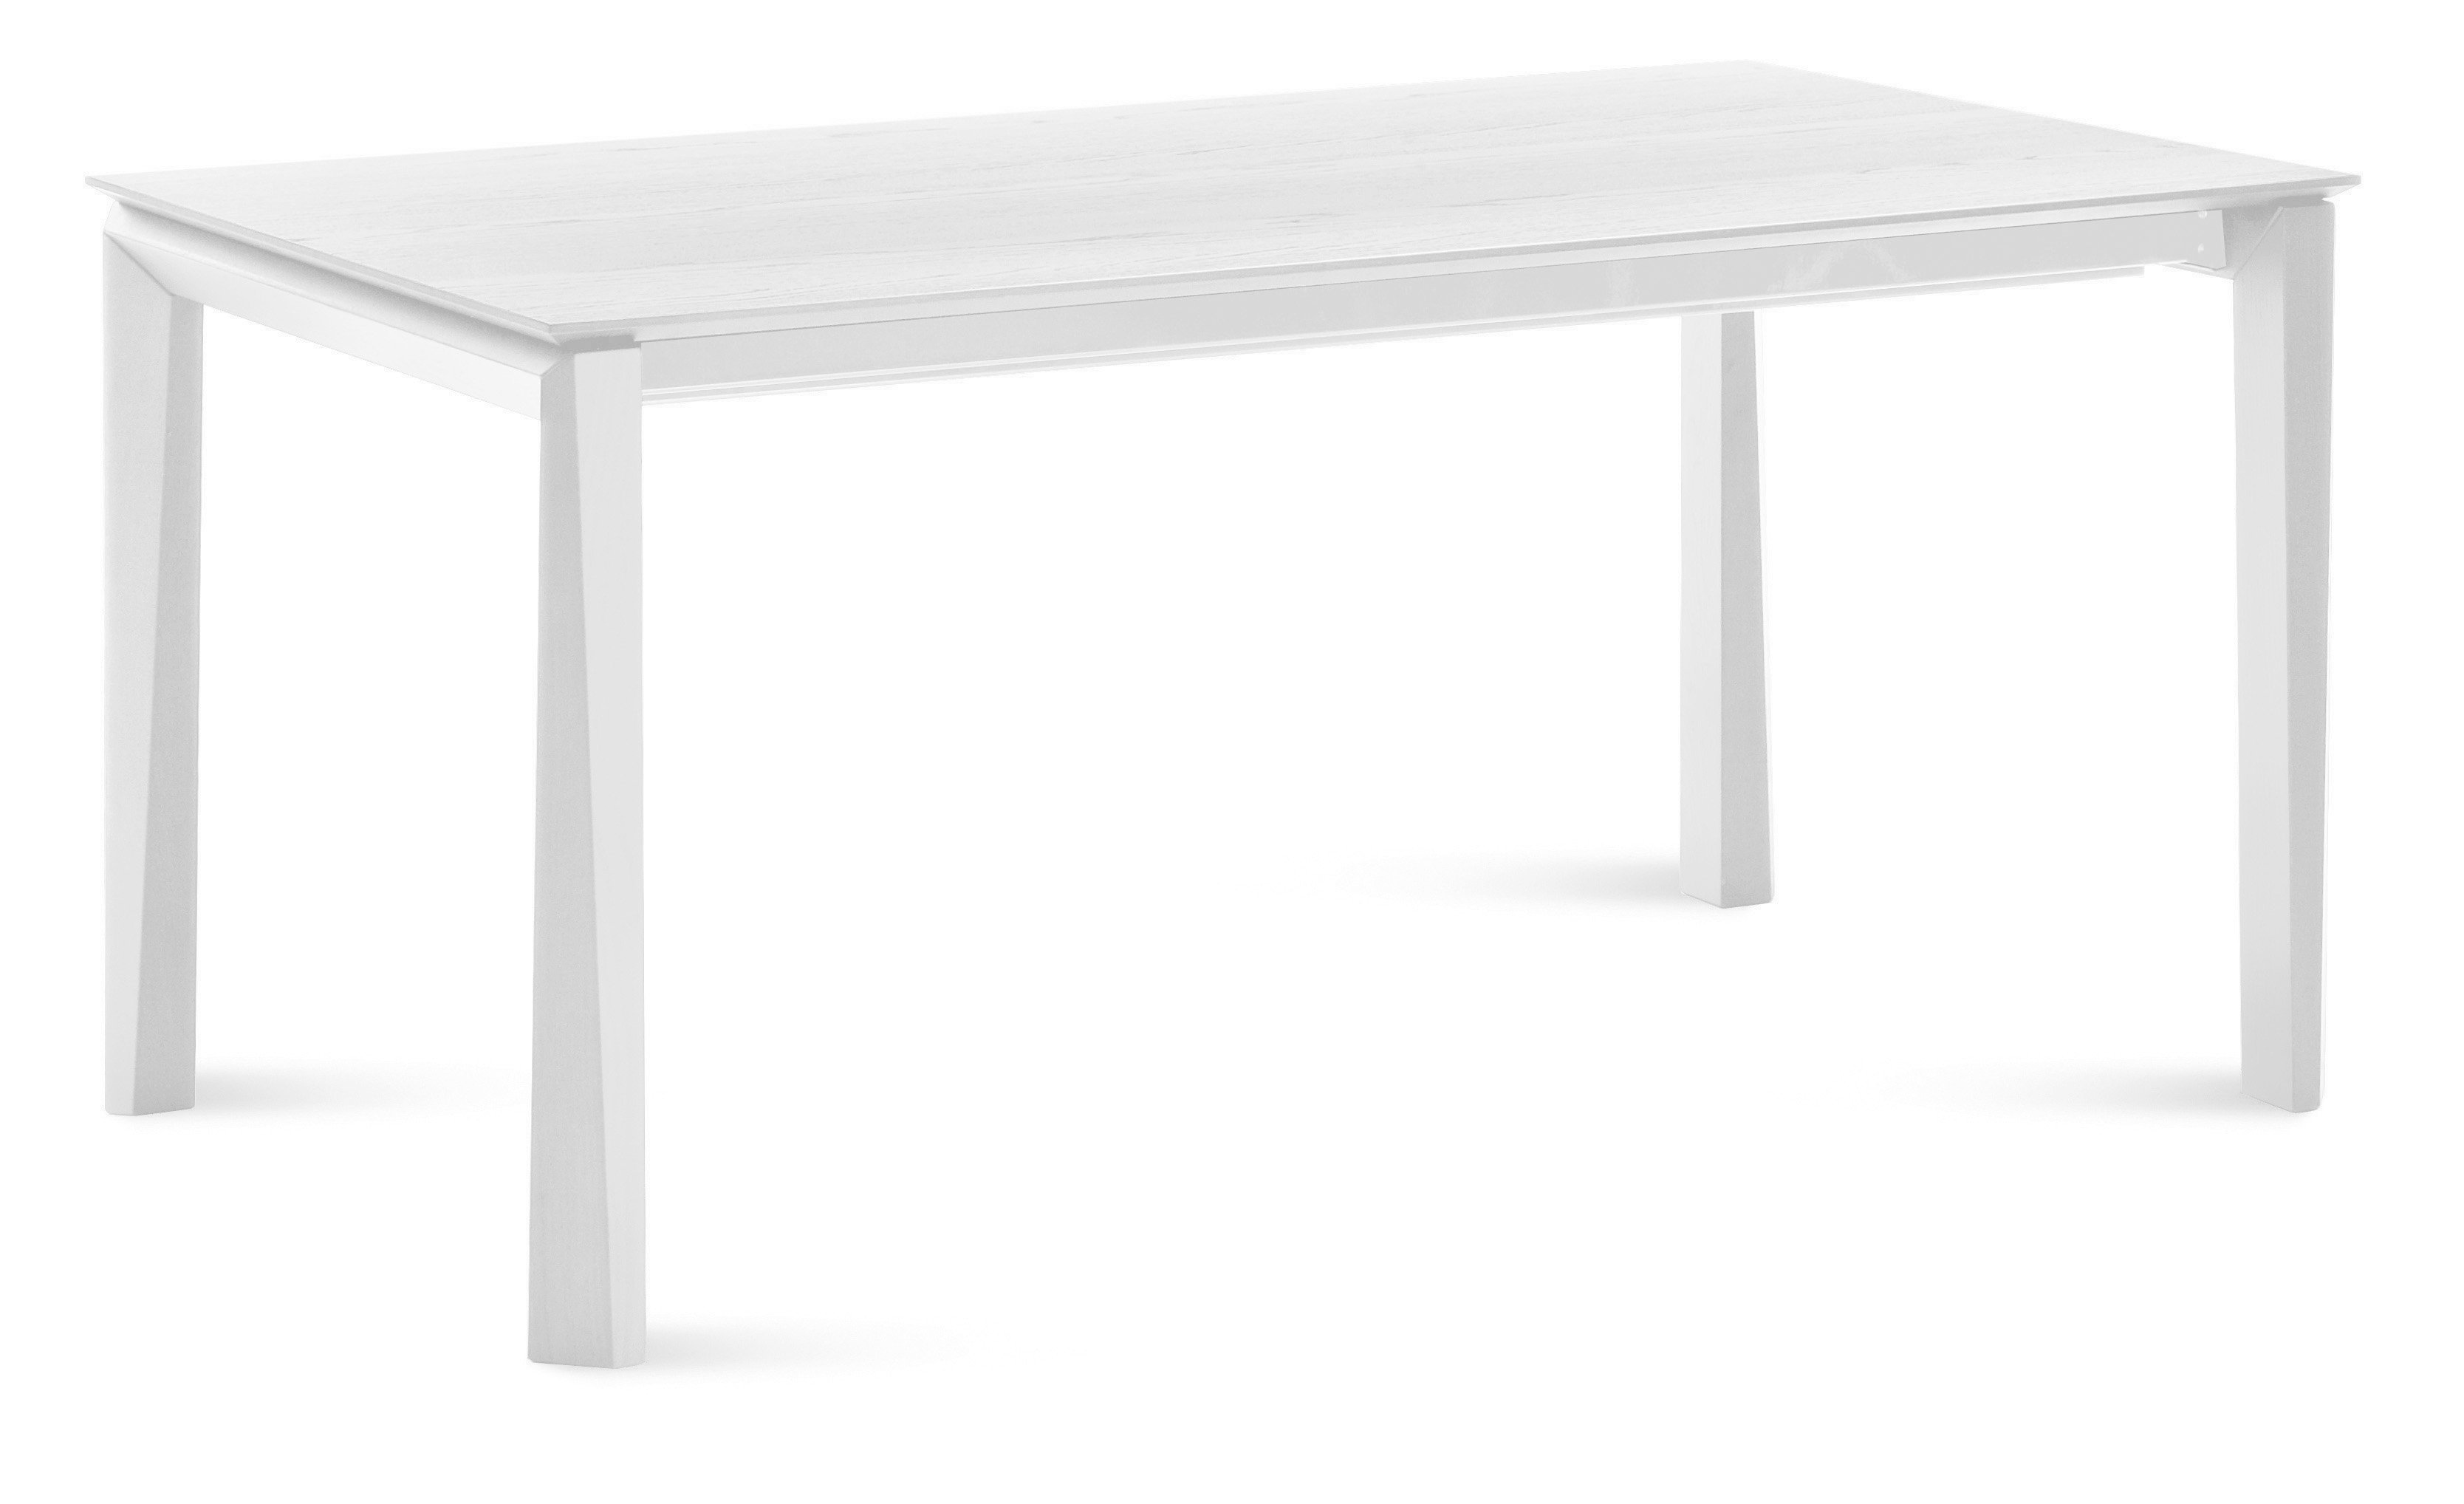 Universe-182 Rectangular Table by DomItalia, Italy